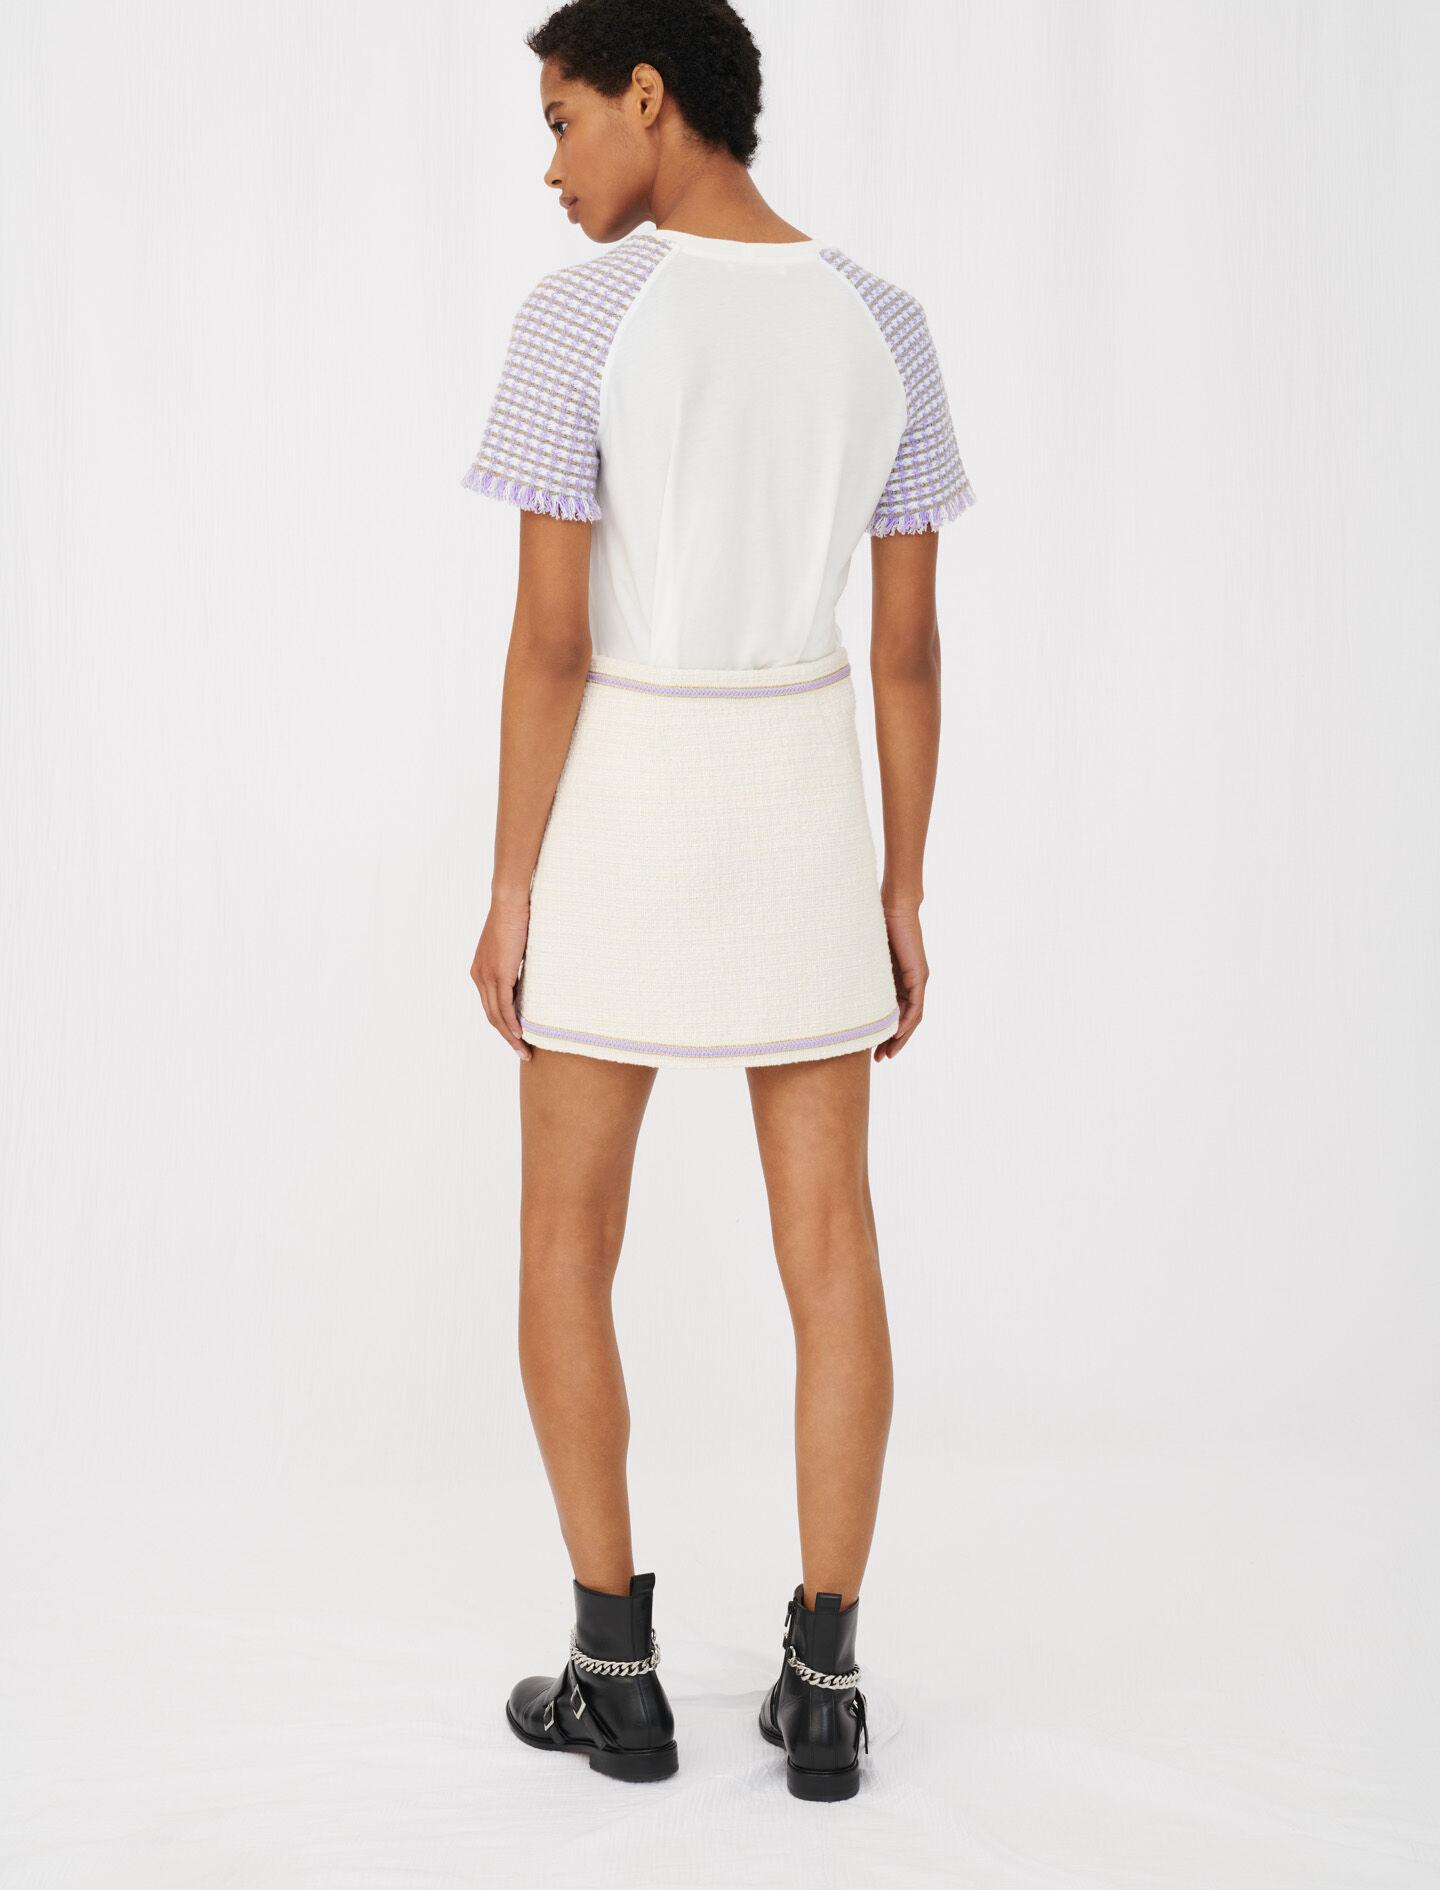 JERSEY T-SHIRT WITH TWEED SLEEVES 3